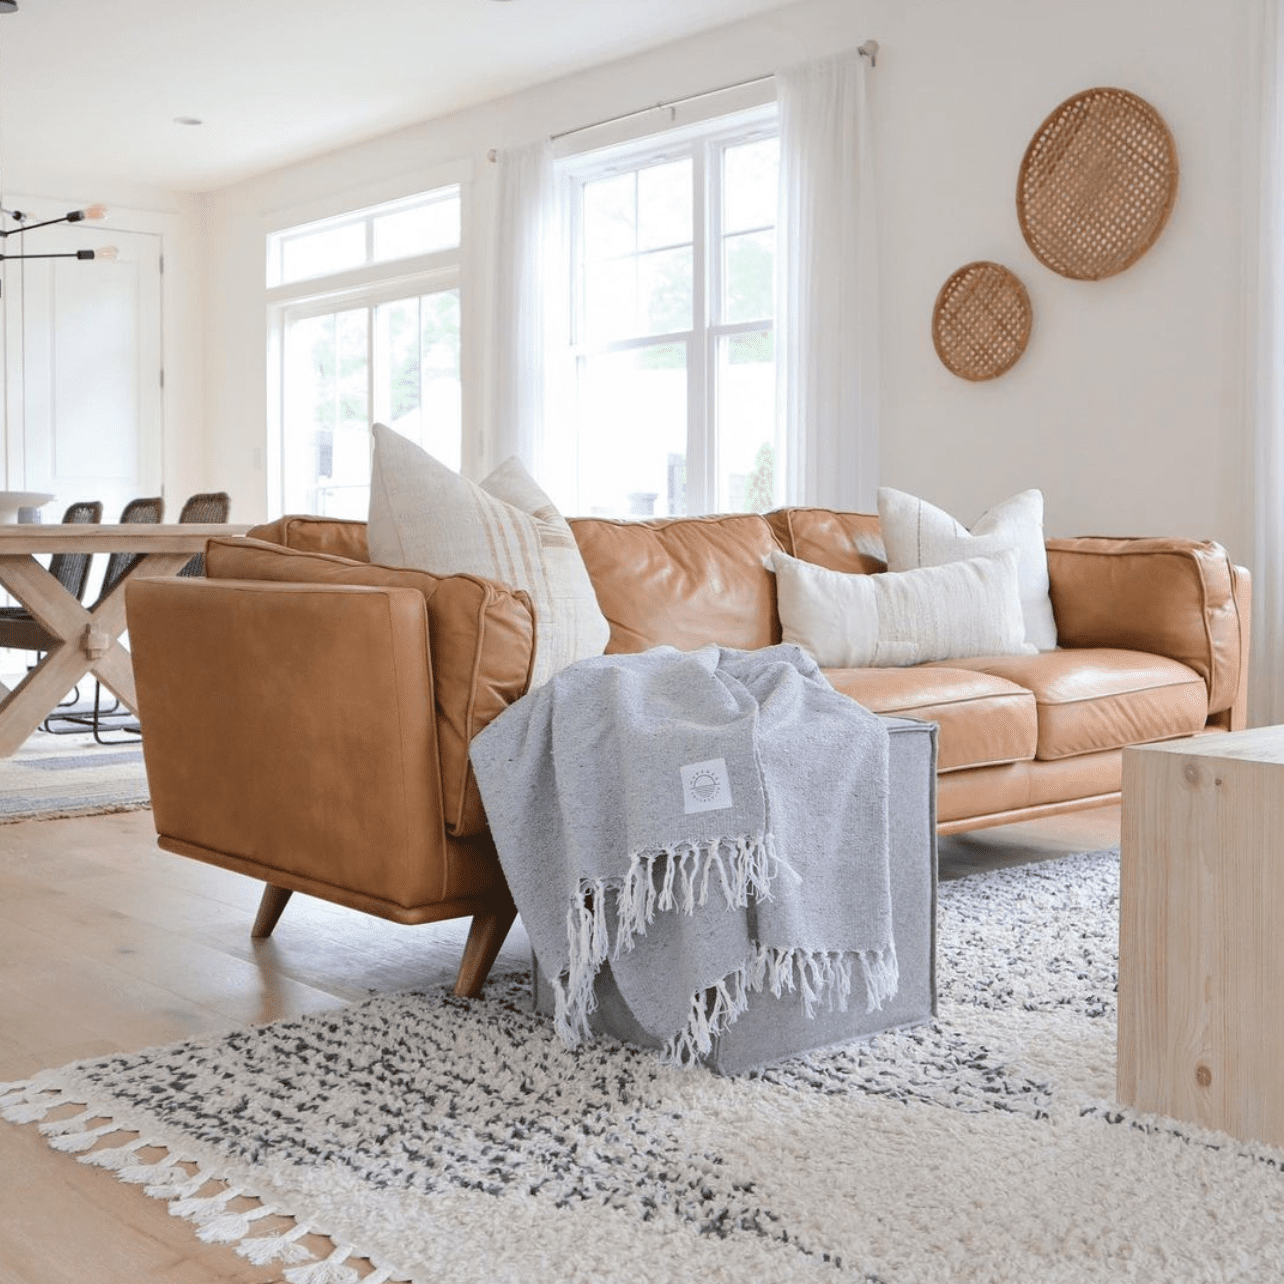 how to clean a leather couch - tan leather sofa in modern white living room